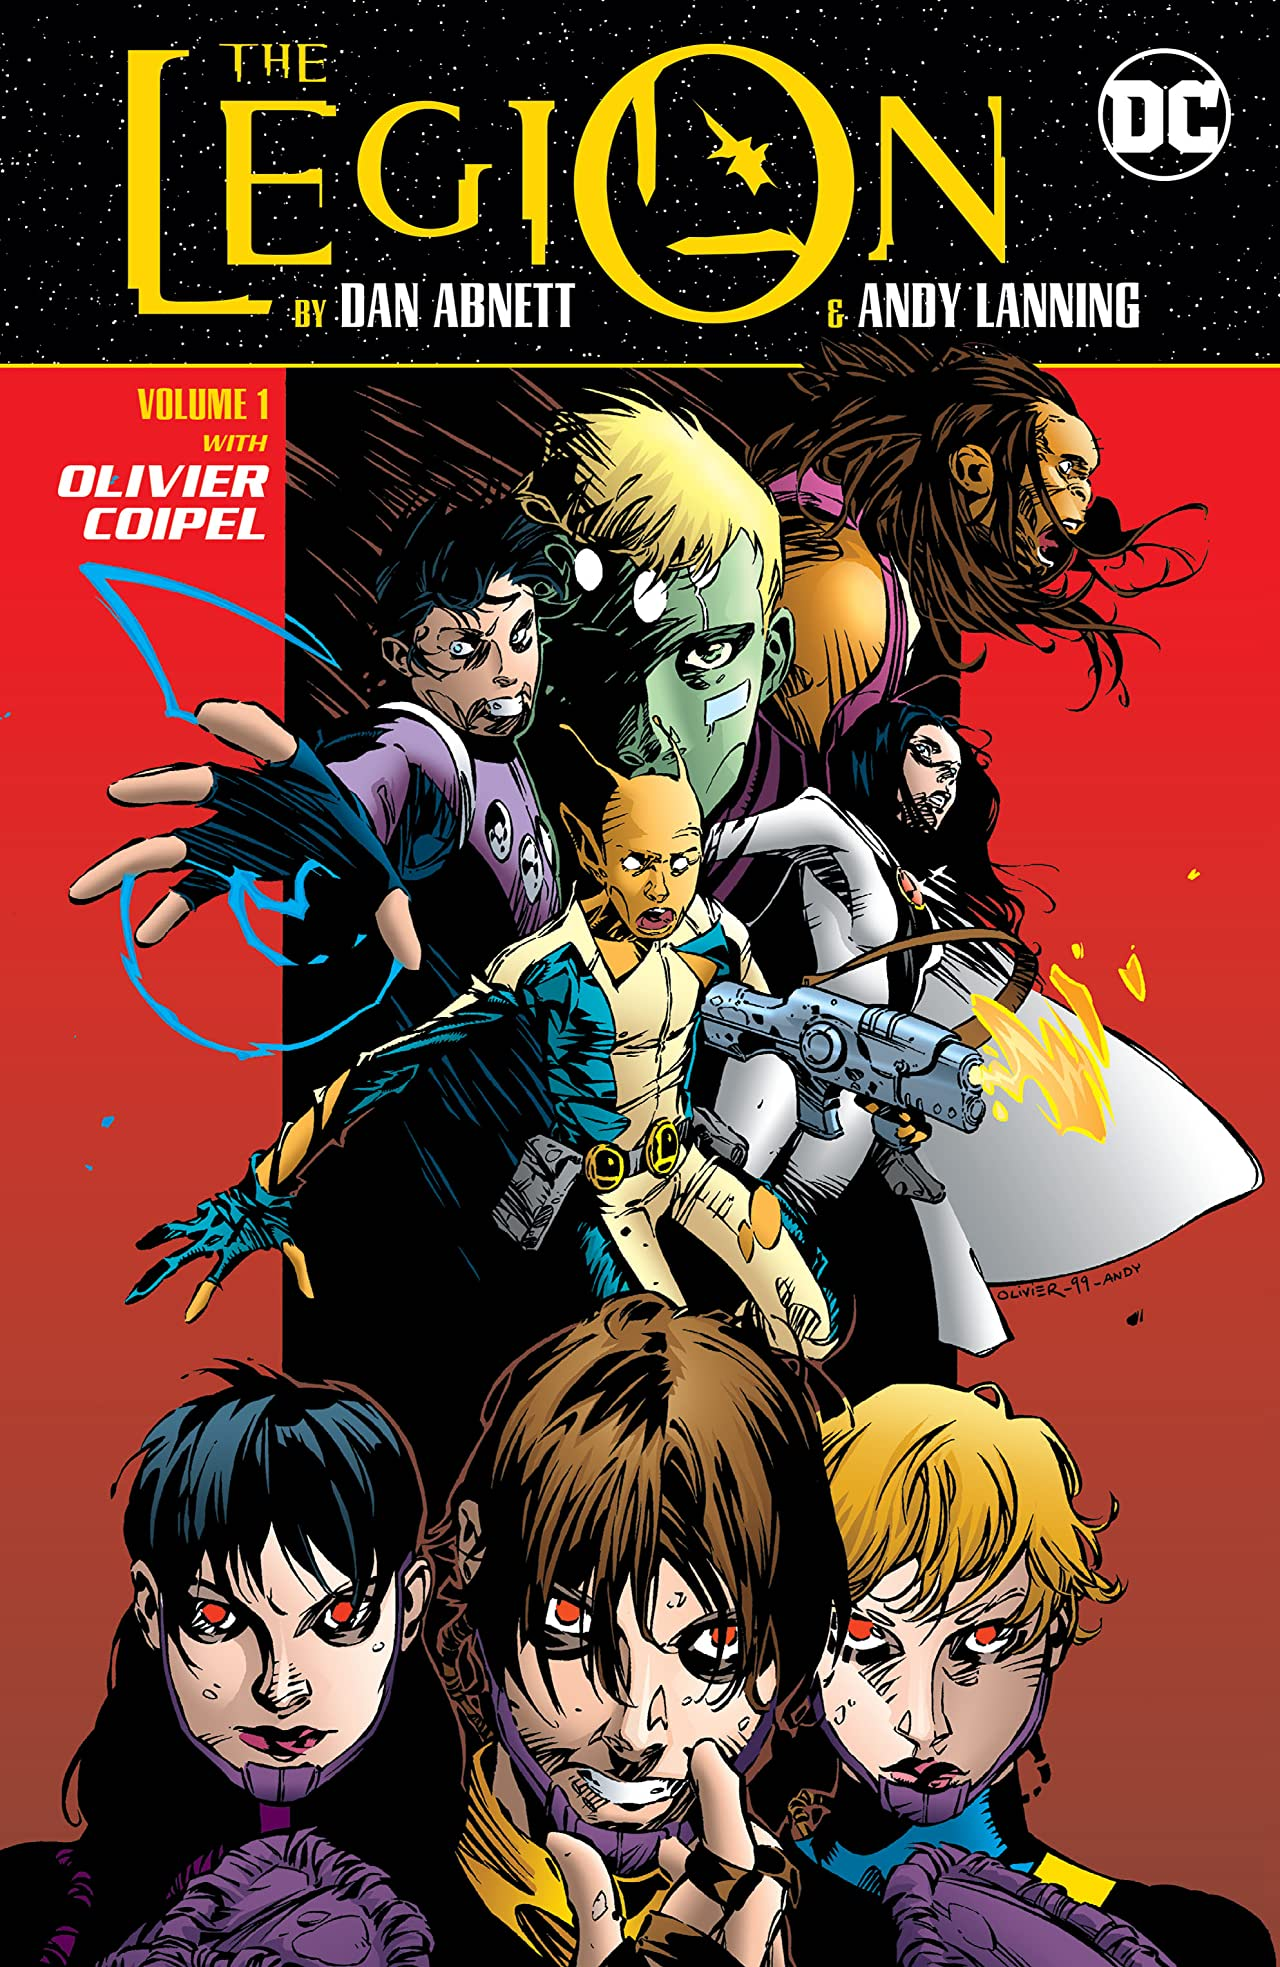 Legion by Dan Abnett & Andy Lanning Volume 1